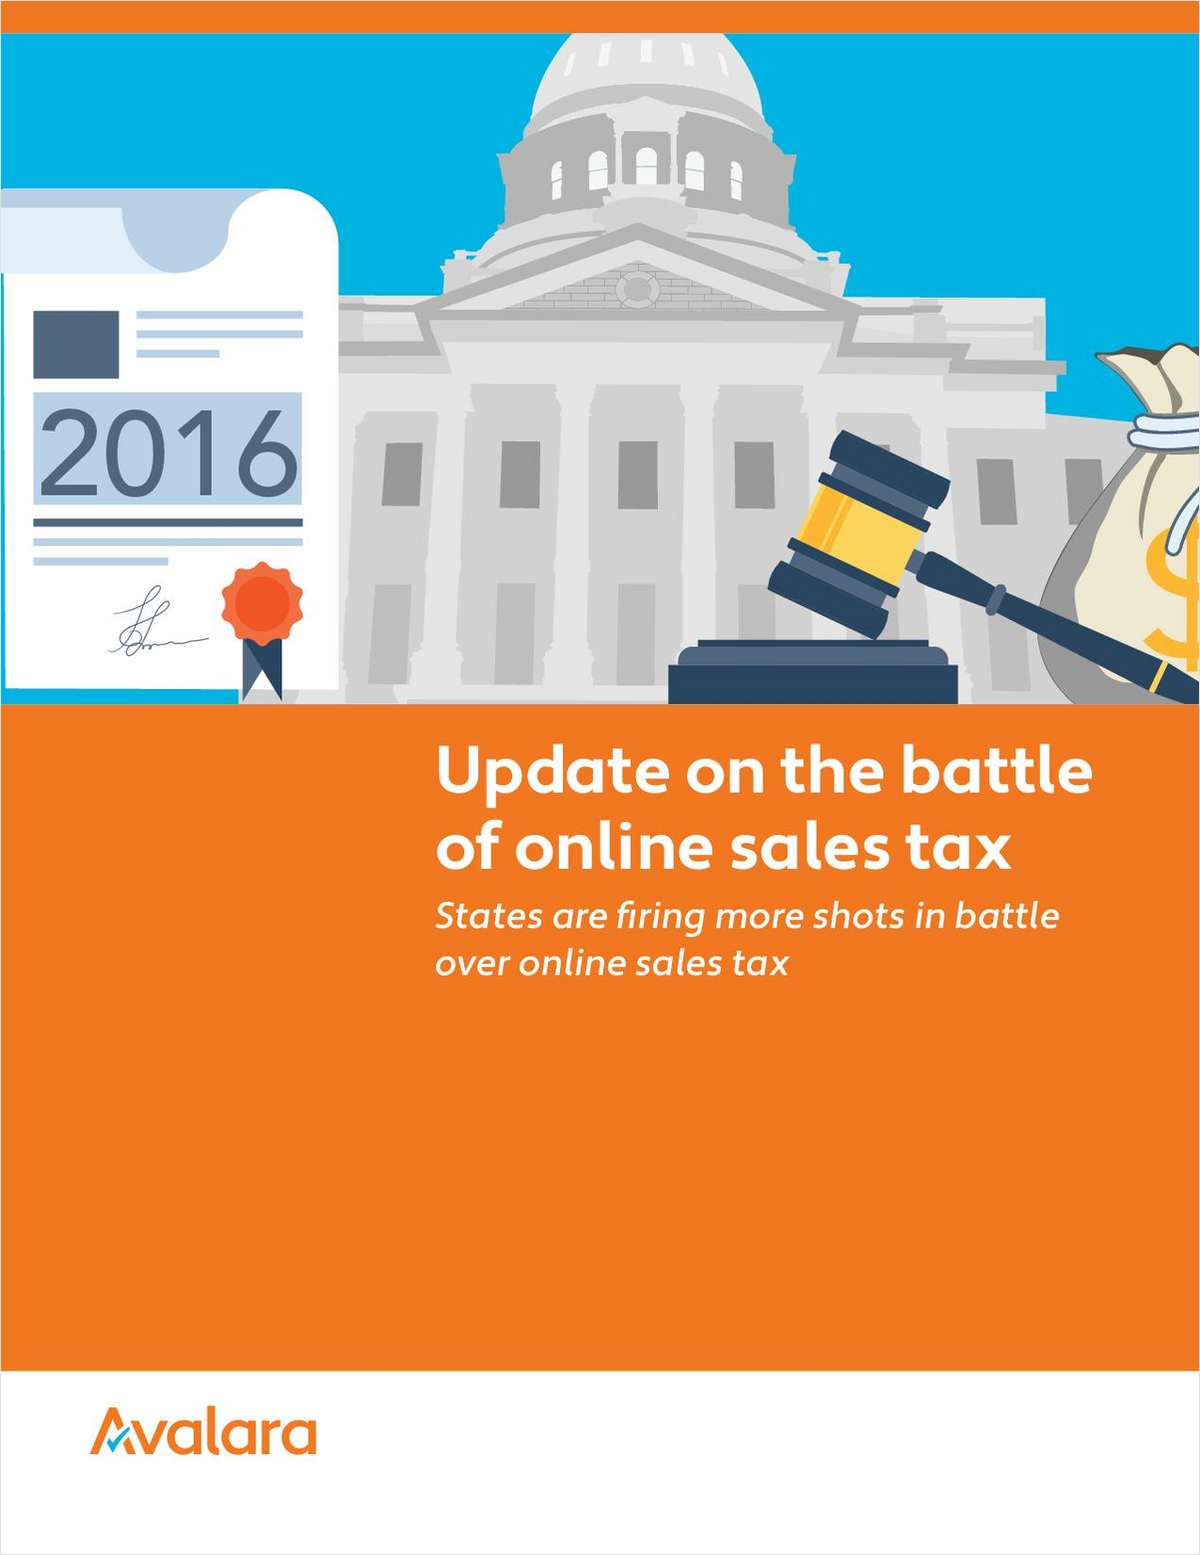 Update on the Battle of Online Sales Tax for Small Businesses